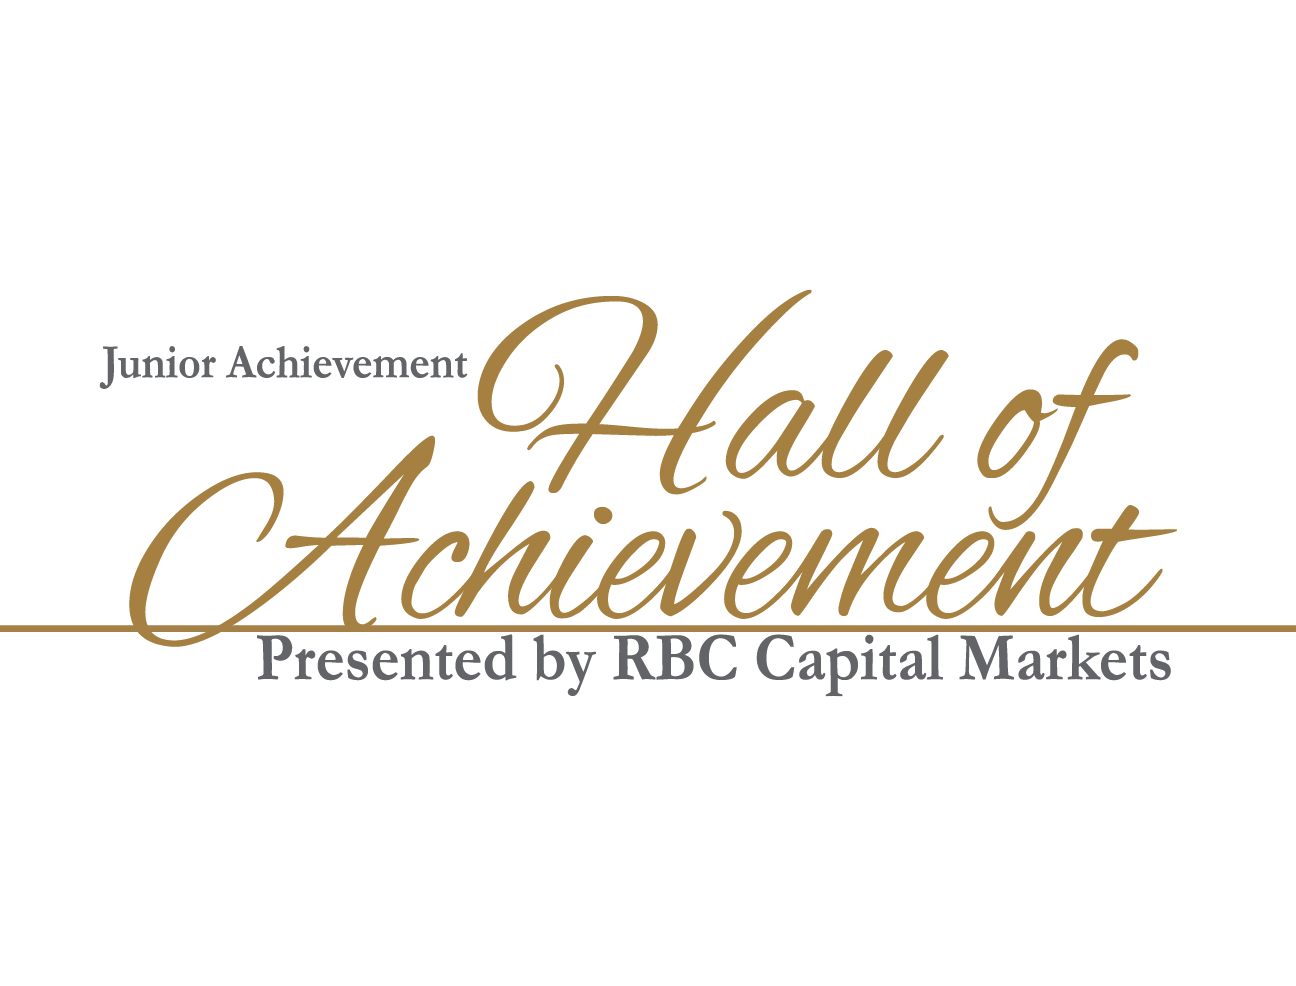 2019 JA Hall of Achievement presented by RBC Capital Markets